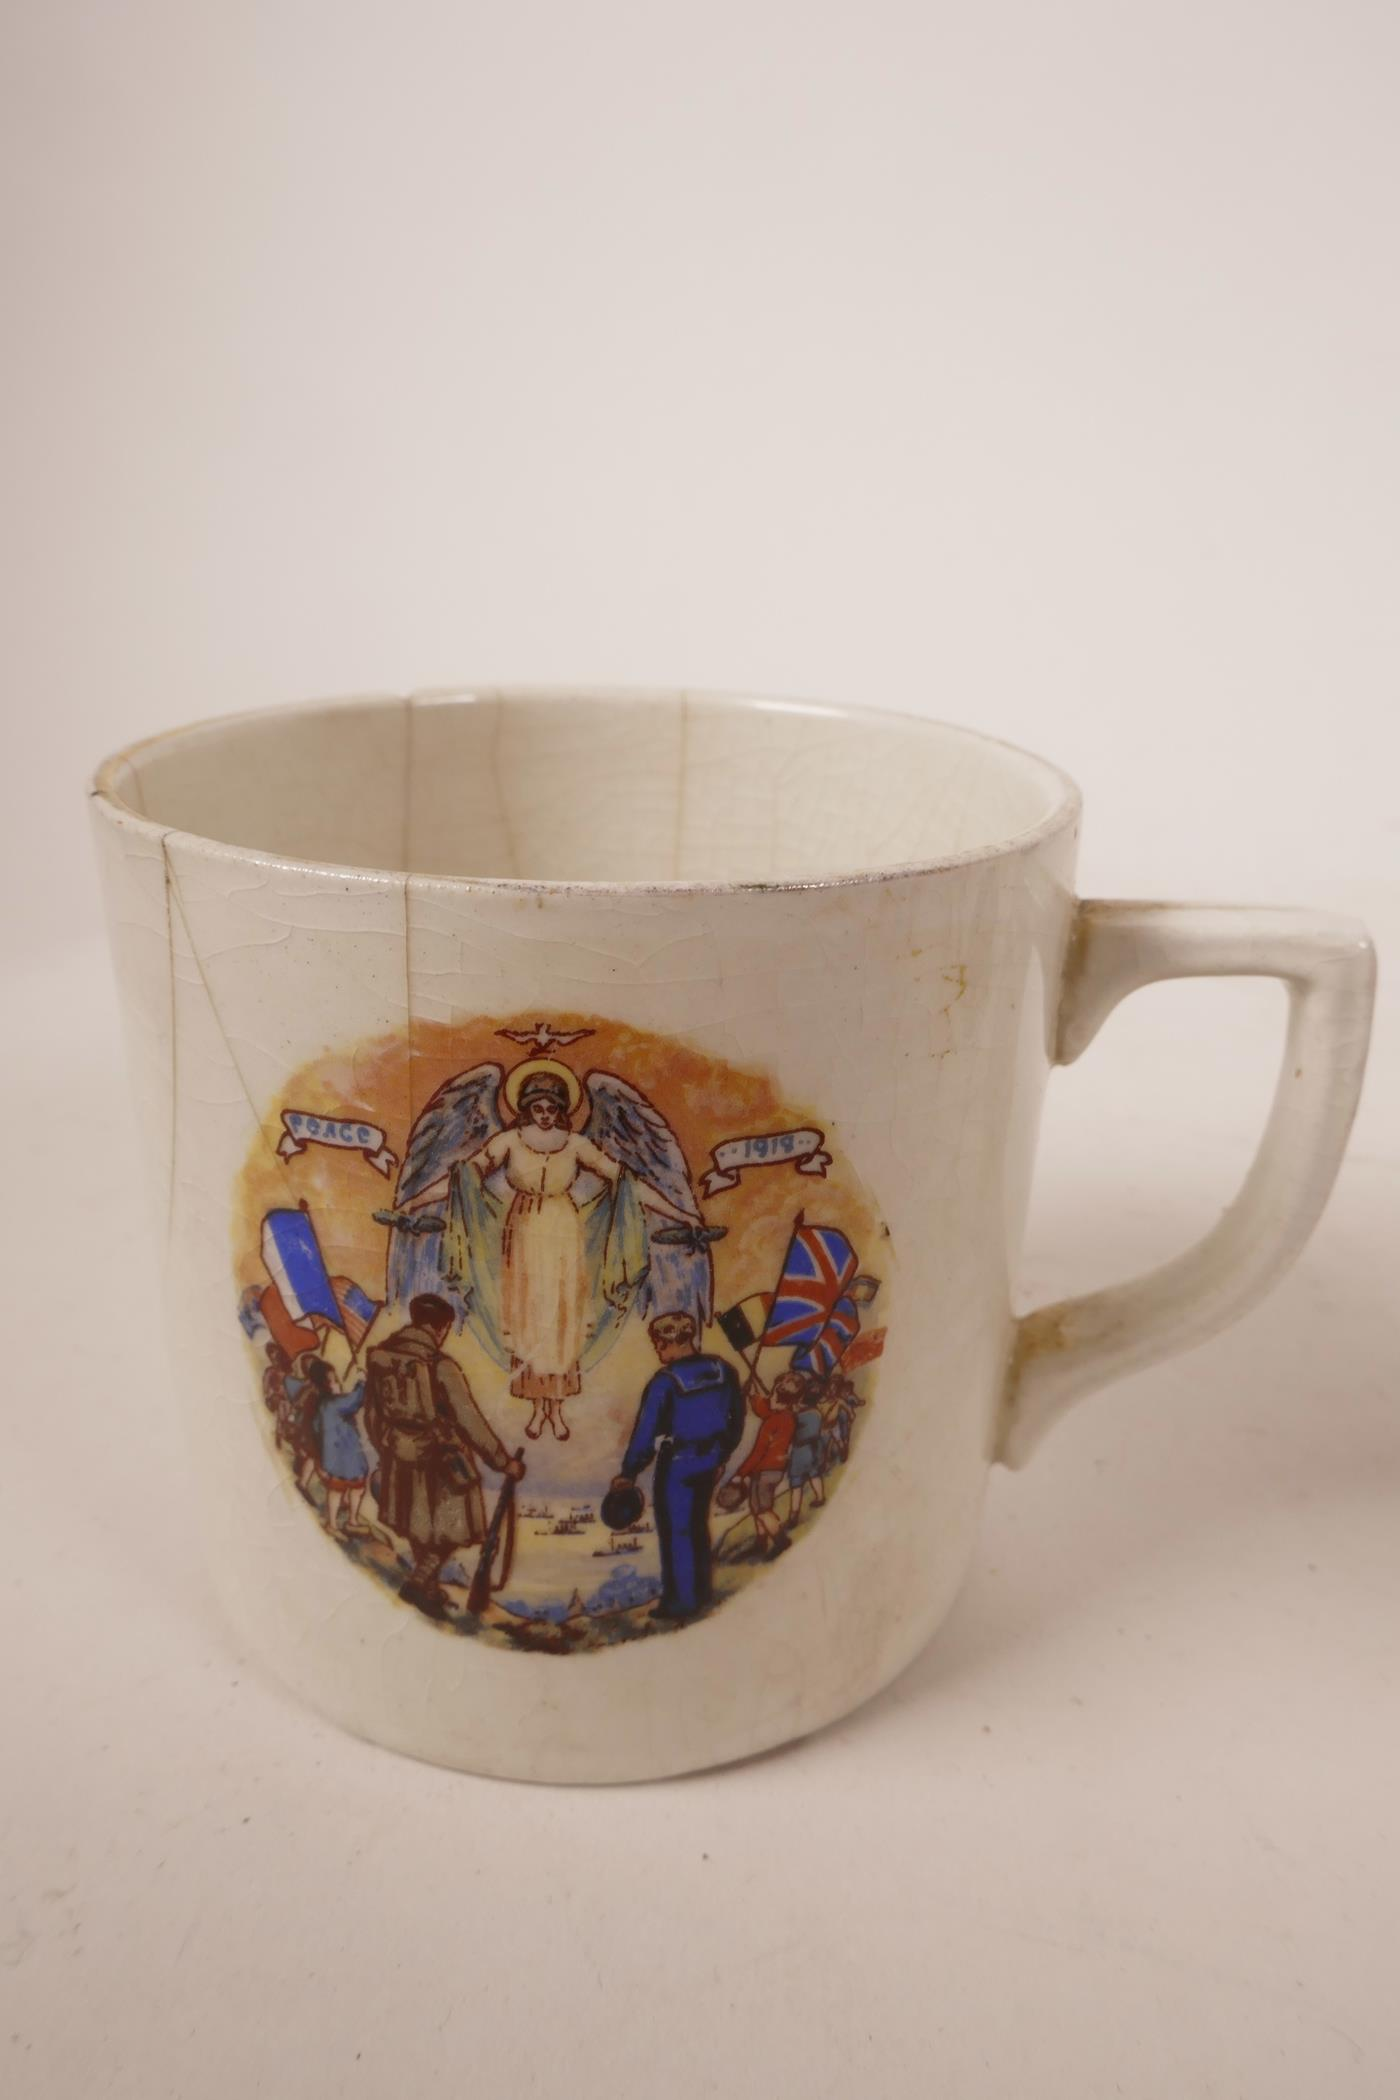 Lot 19 - A variety of porcelain items including crested ware, a Wedgwood Jasperware pot and an unusual WW1